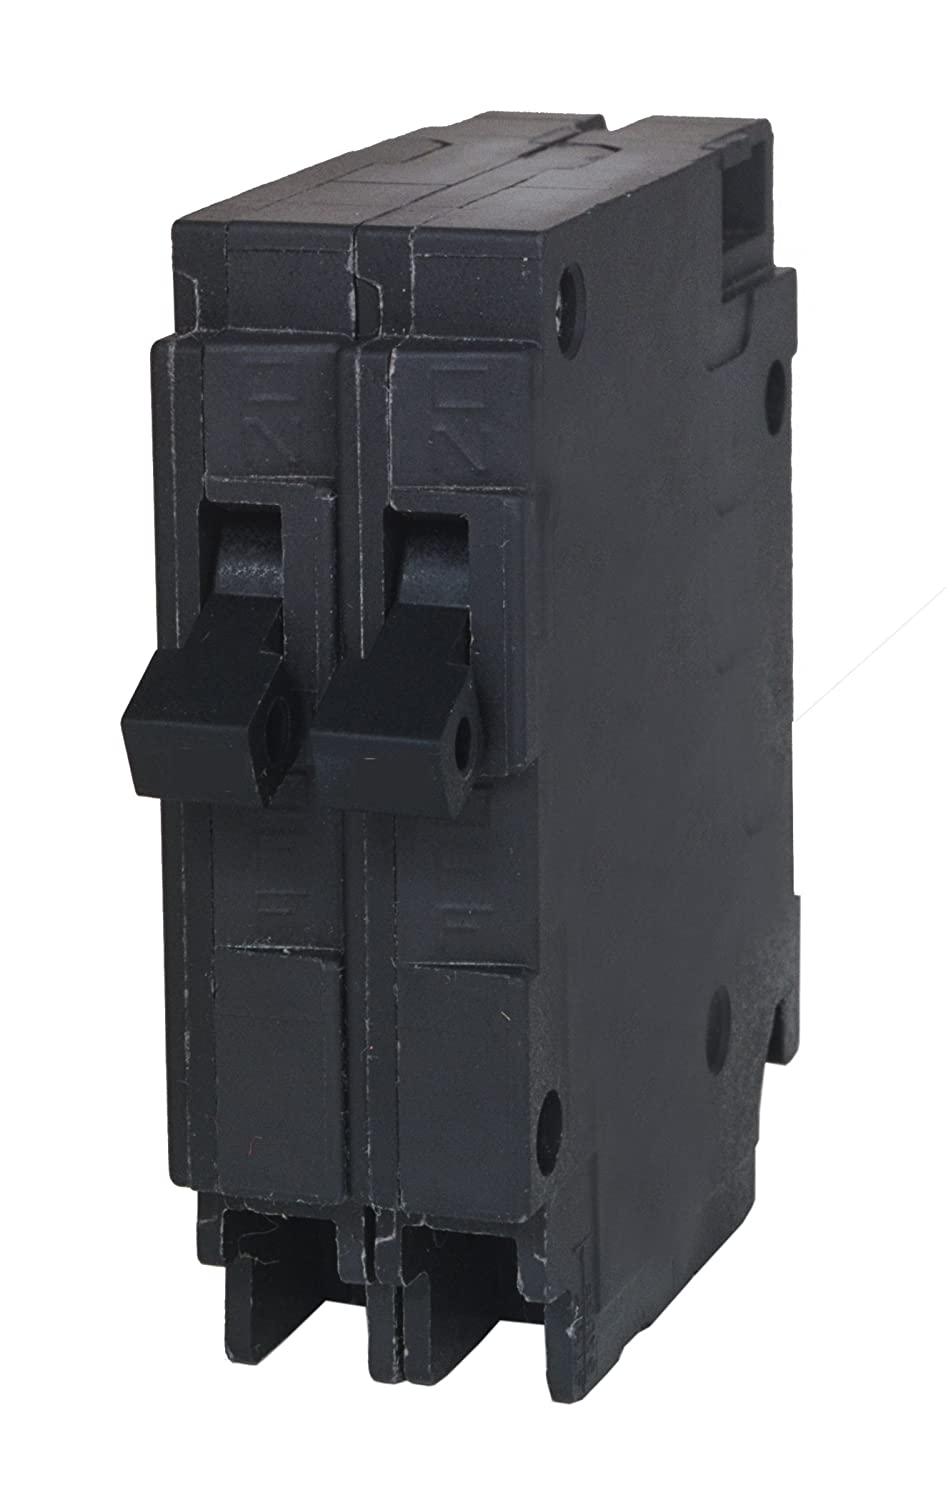 Murray MP2030 One 20-Amp and One 30-Amp Single Pole 120-Volt Circuit Breaker